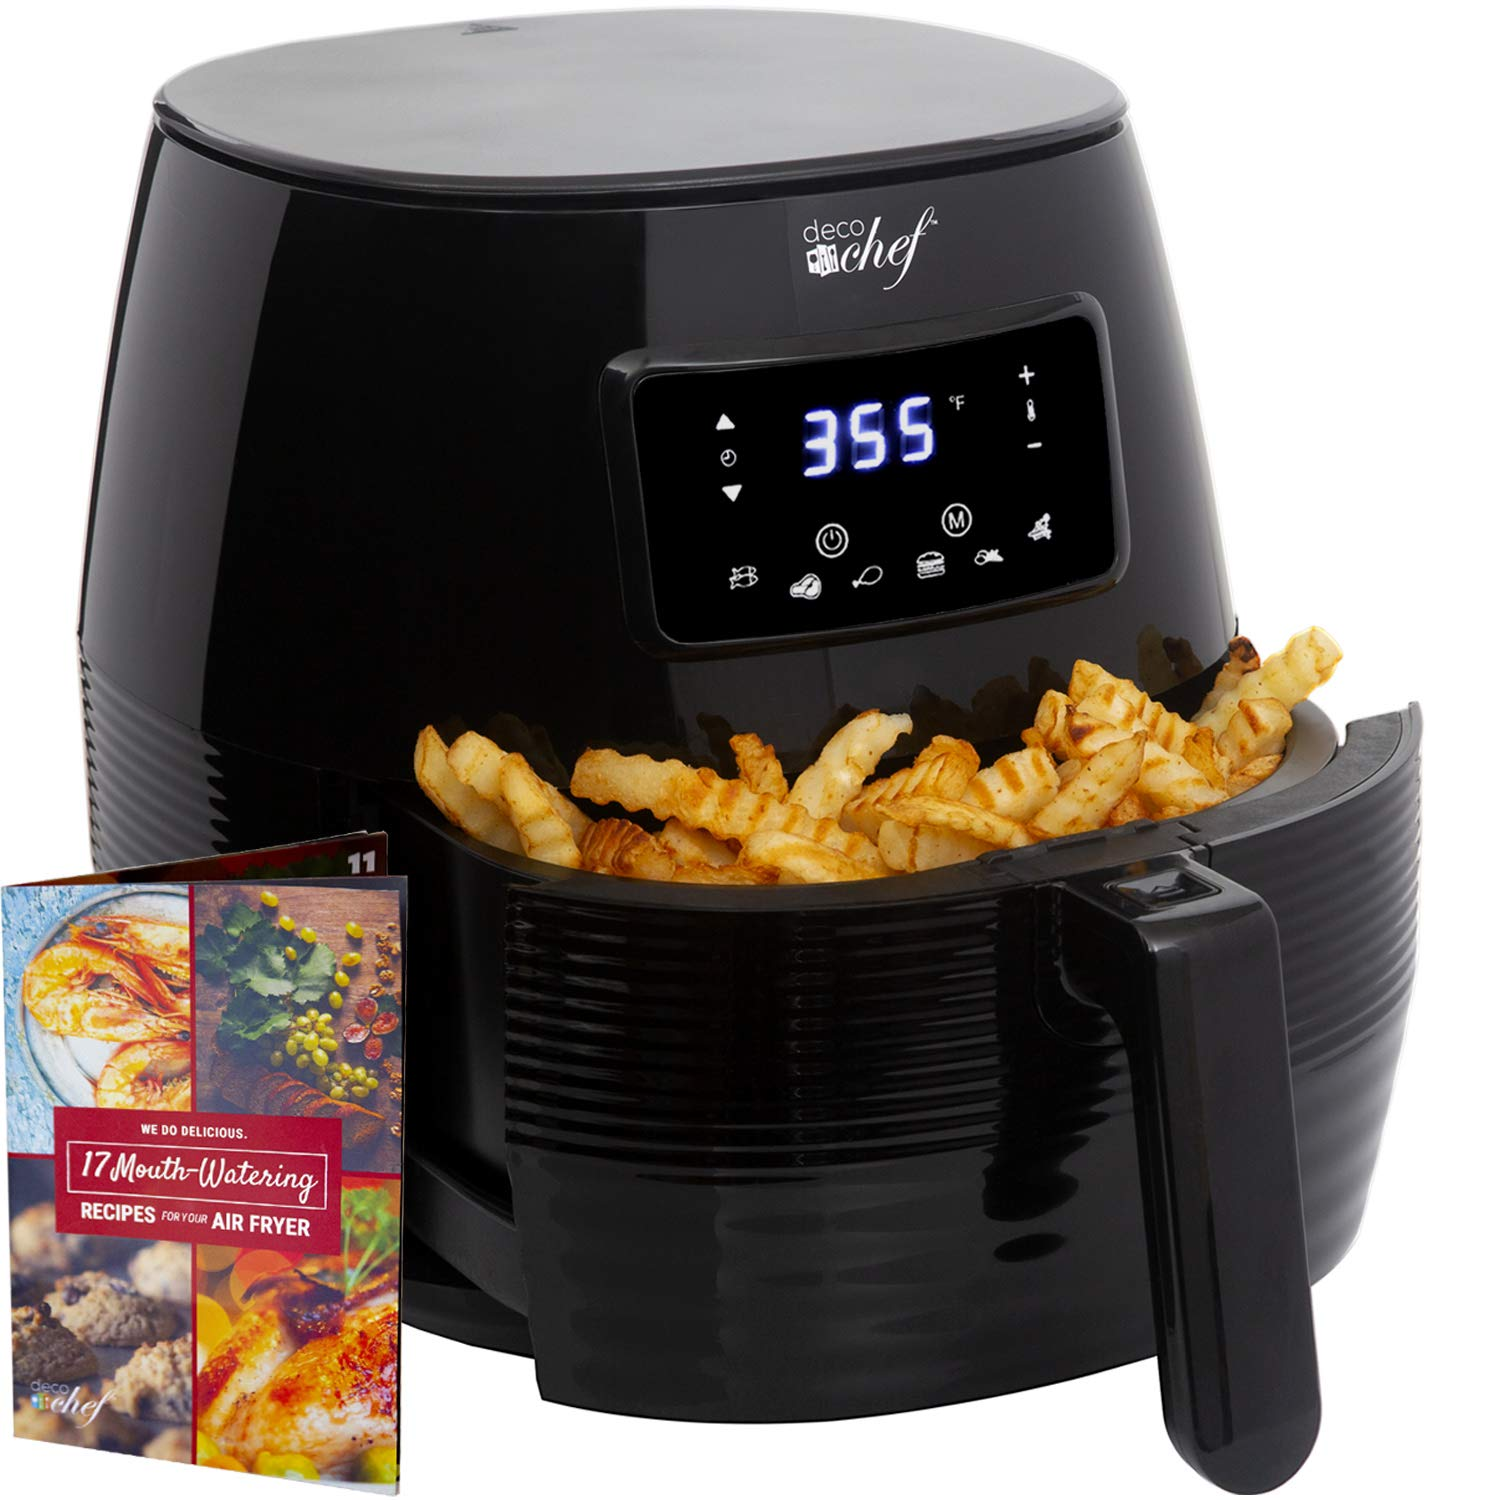 Deco Chef 5.8QT Digital Electric Air Fryer with Accessories and Cookbook- Air Frying, Roasting, Baking, Crisping, and Reheating for Healthier and Faster Cooking (Black)